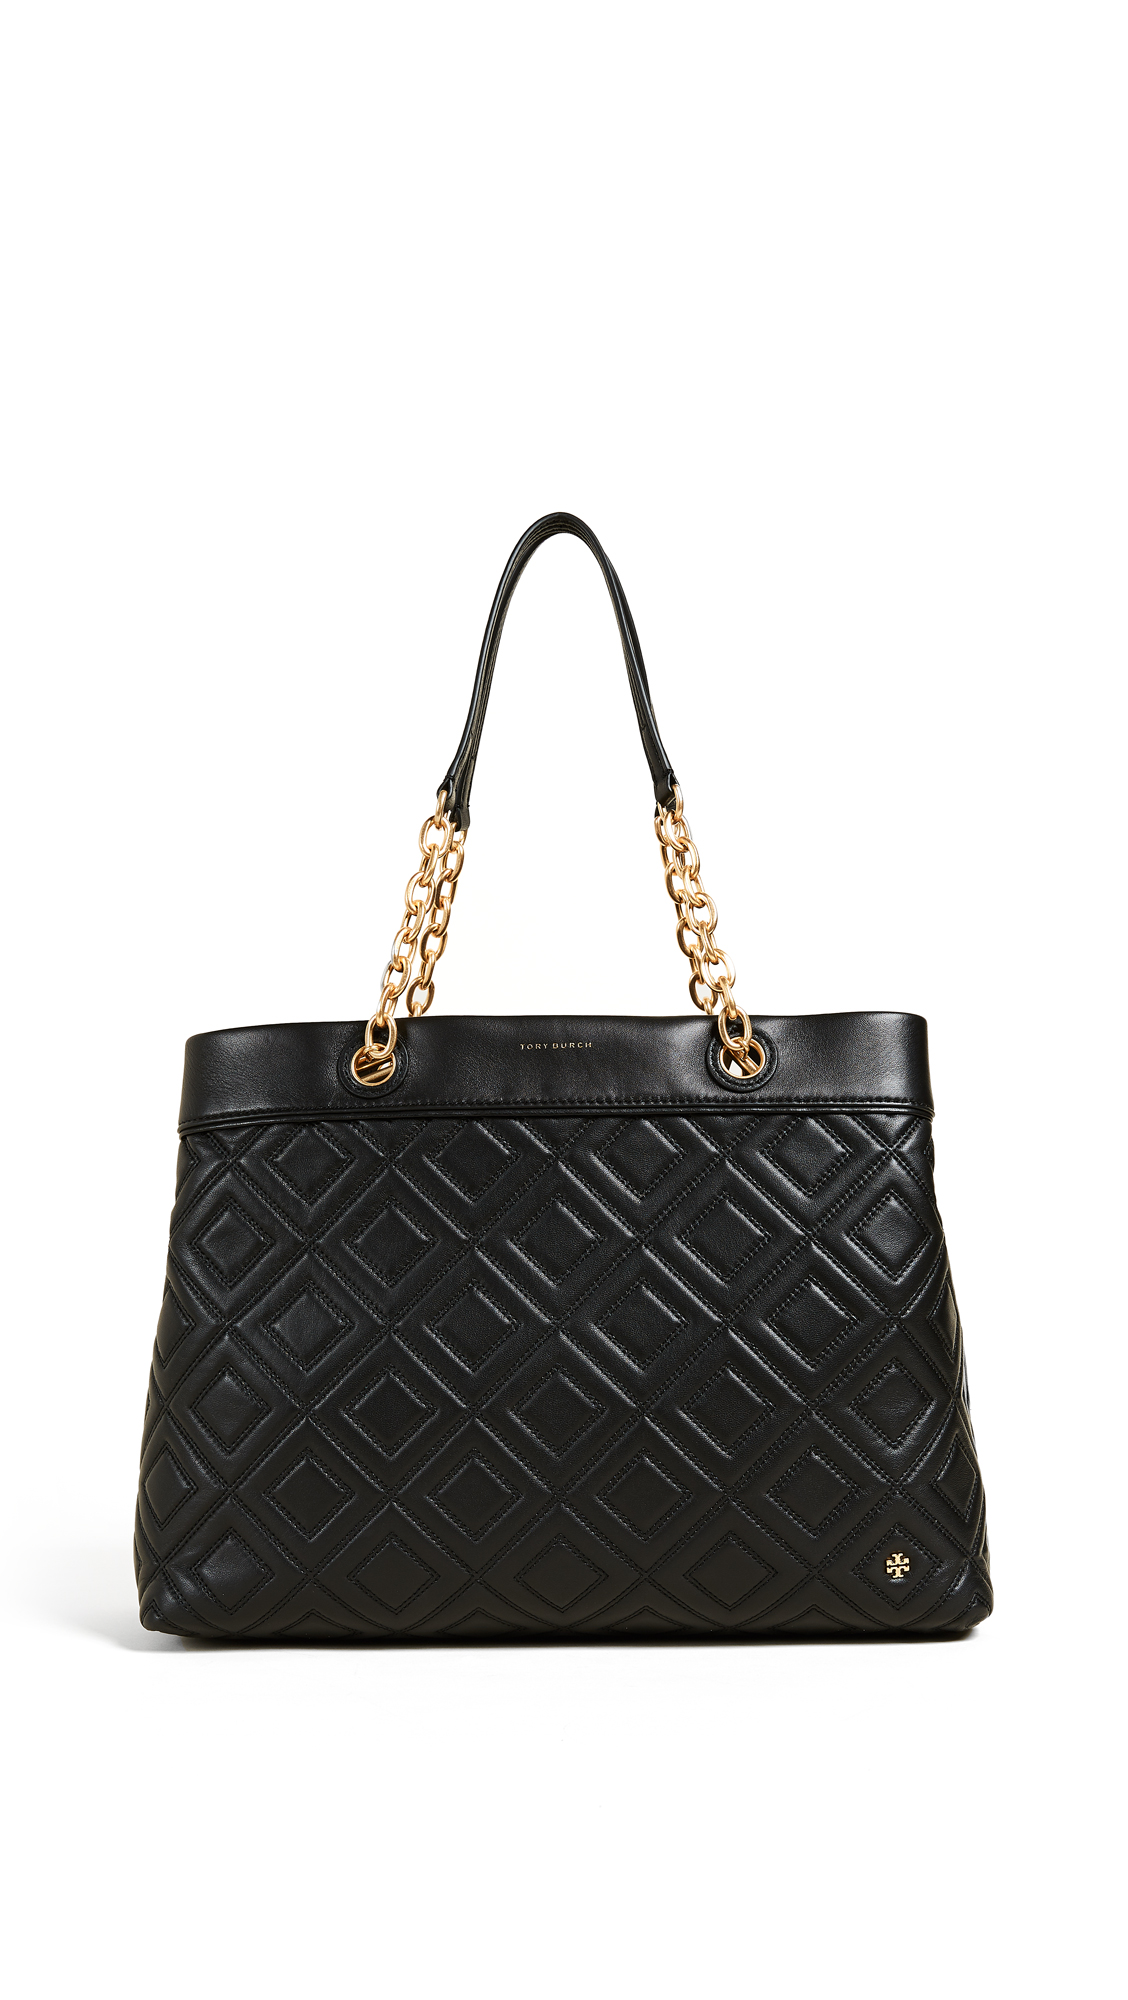 Tory Burch Fleming Triple Compartment Tote - Black